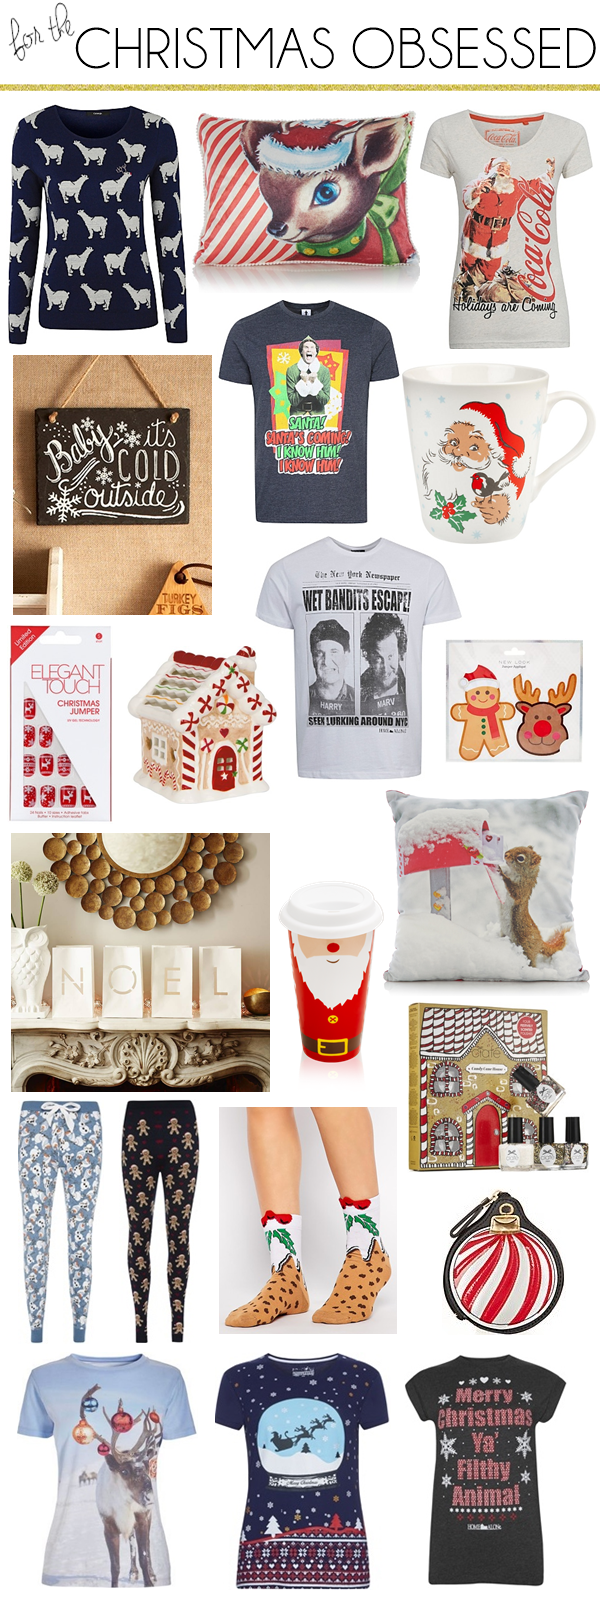 Christmas_novelty_clothes_gifts